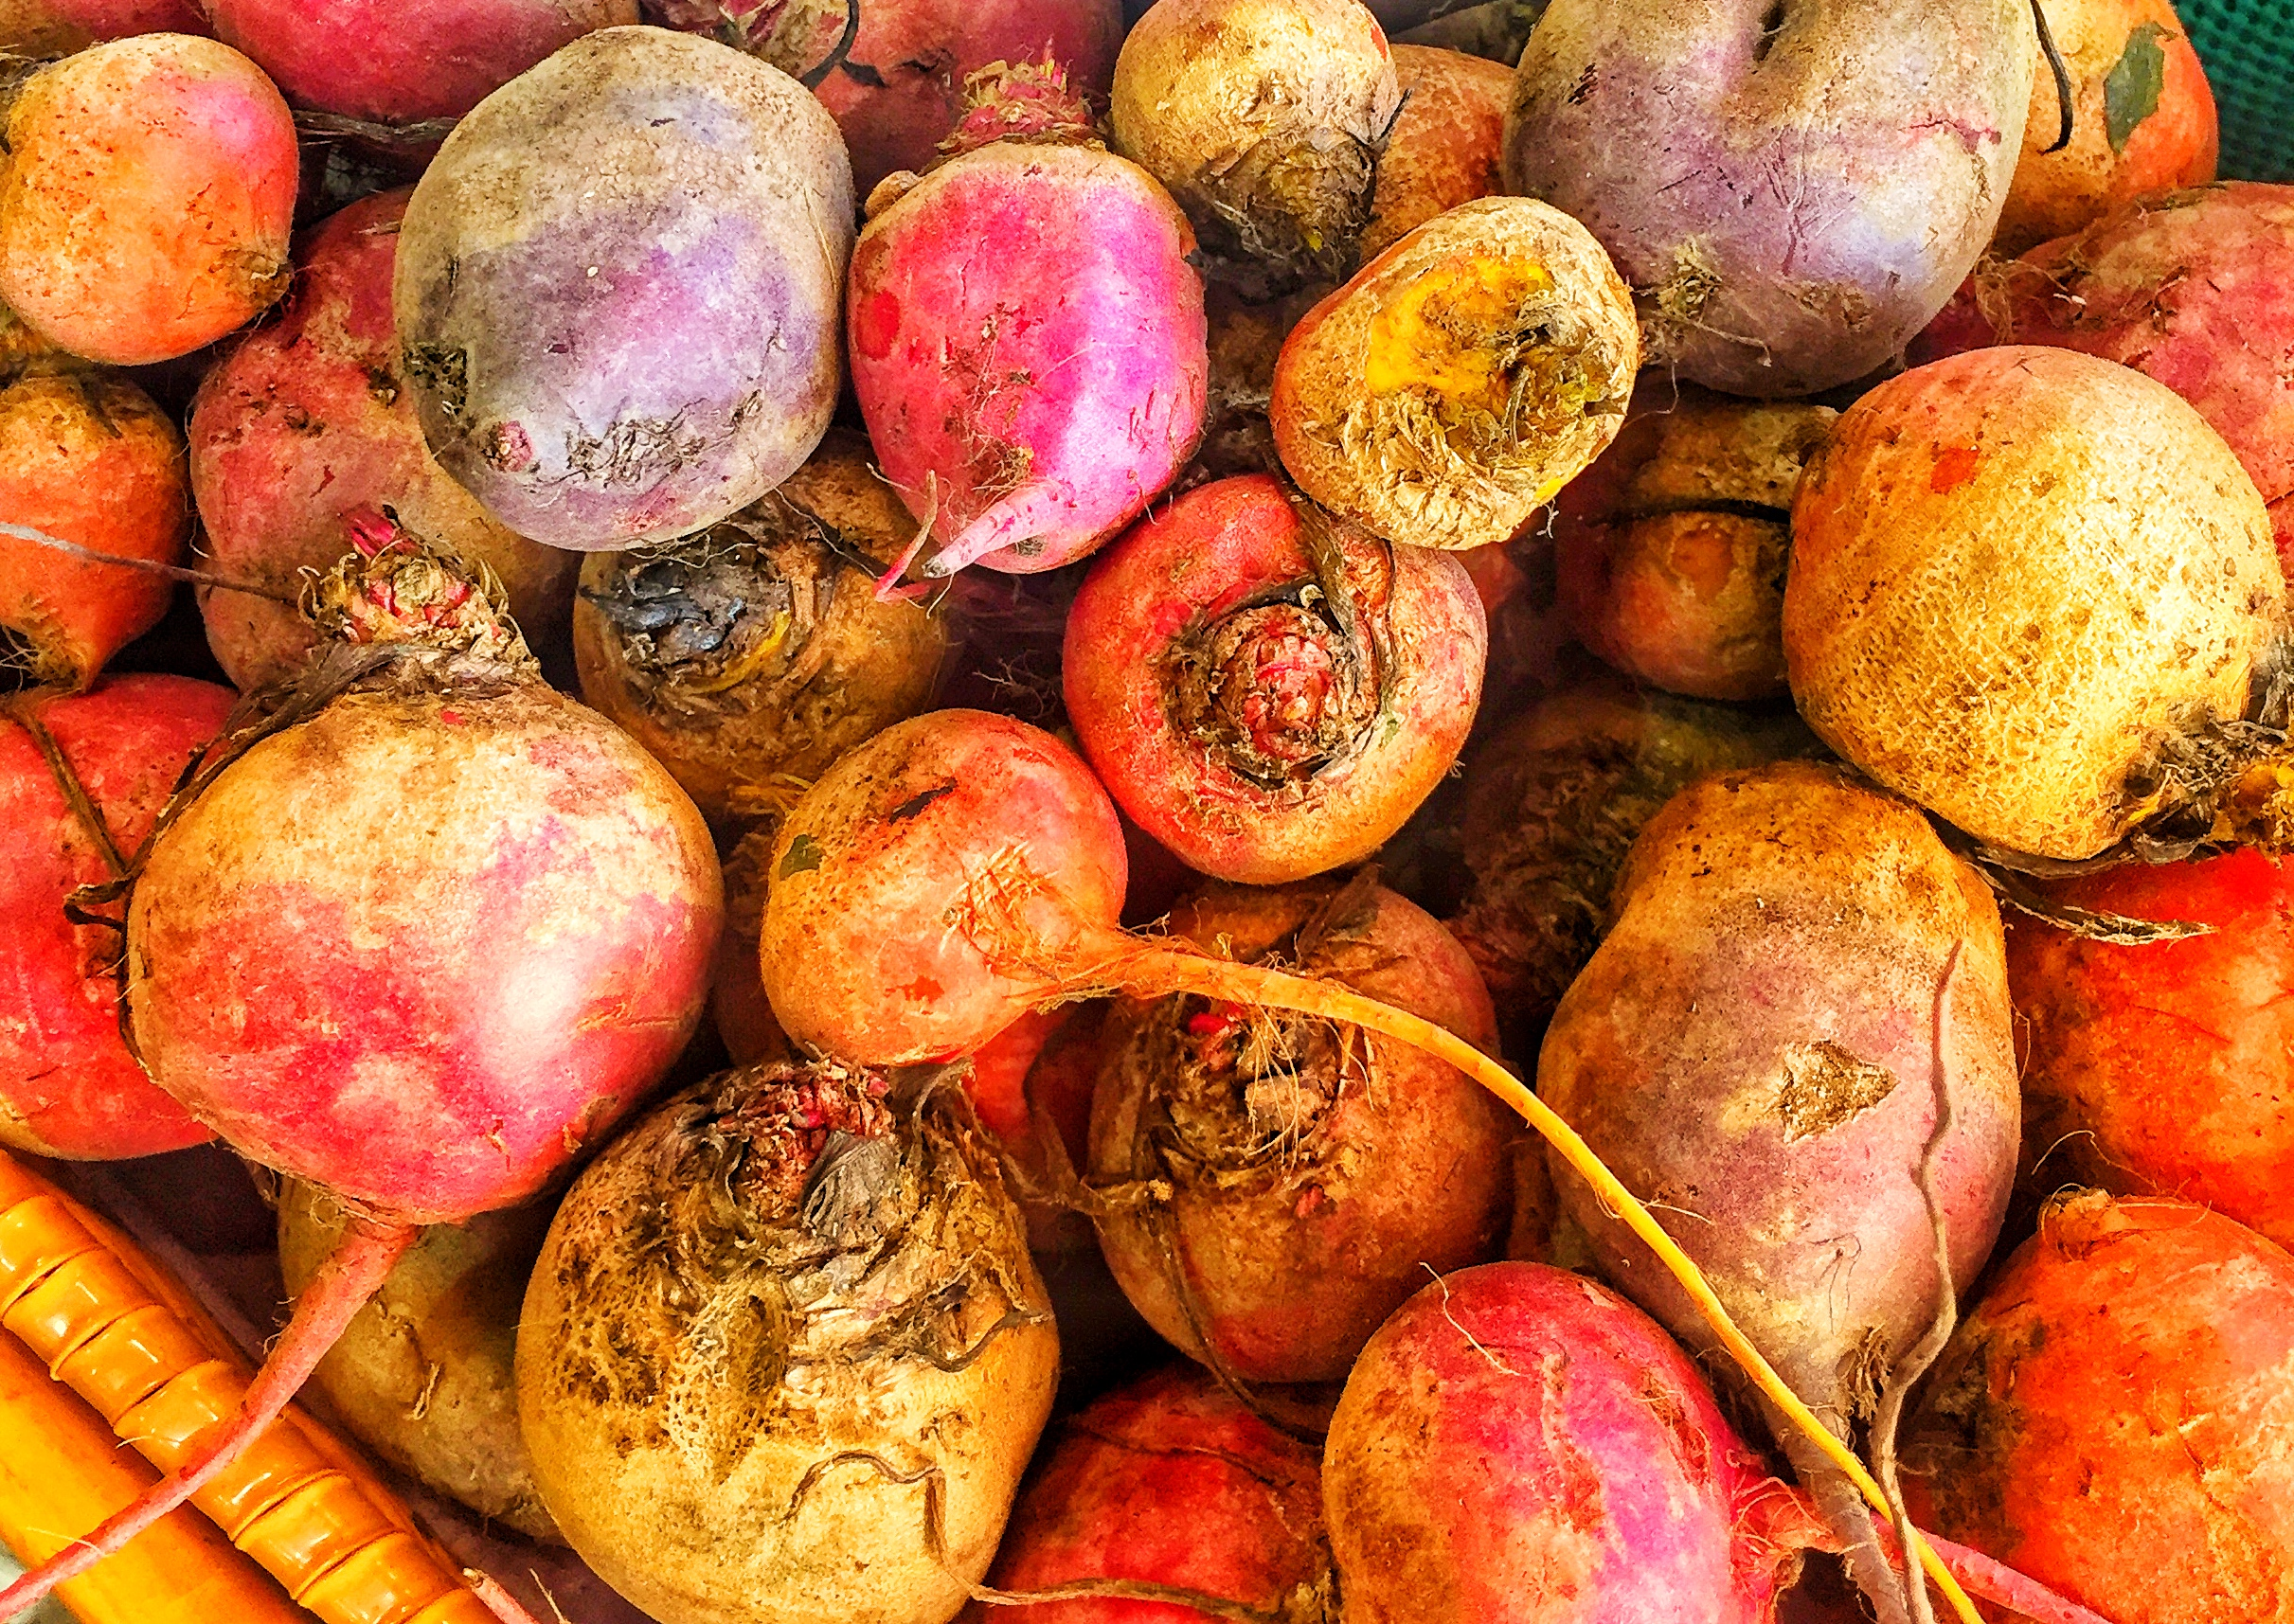 Locally grown organic beets and radishes on special!